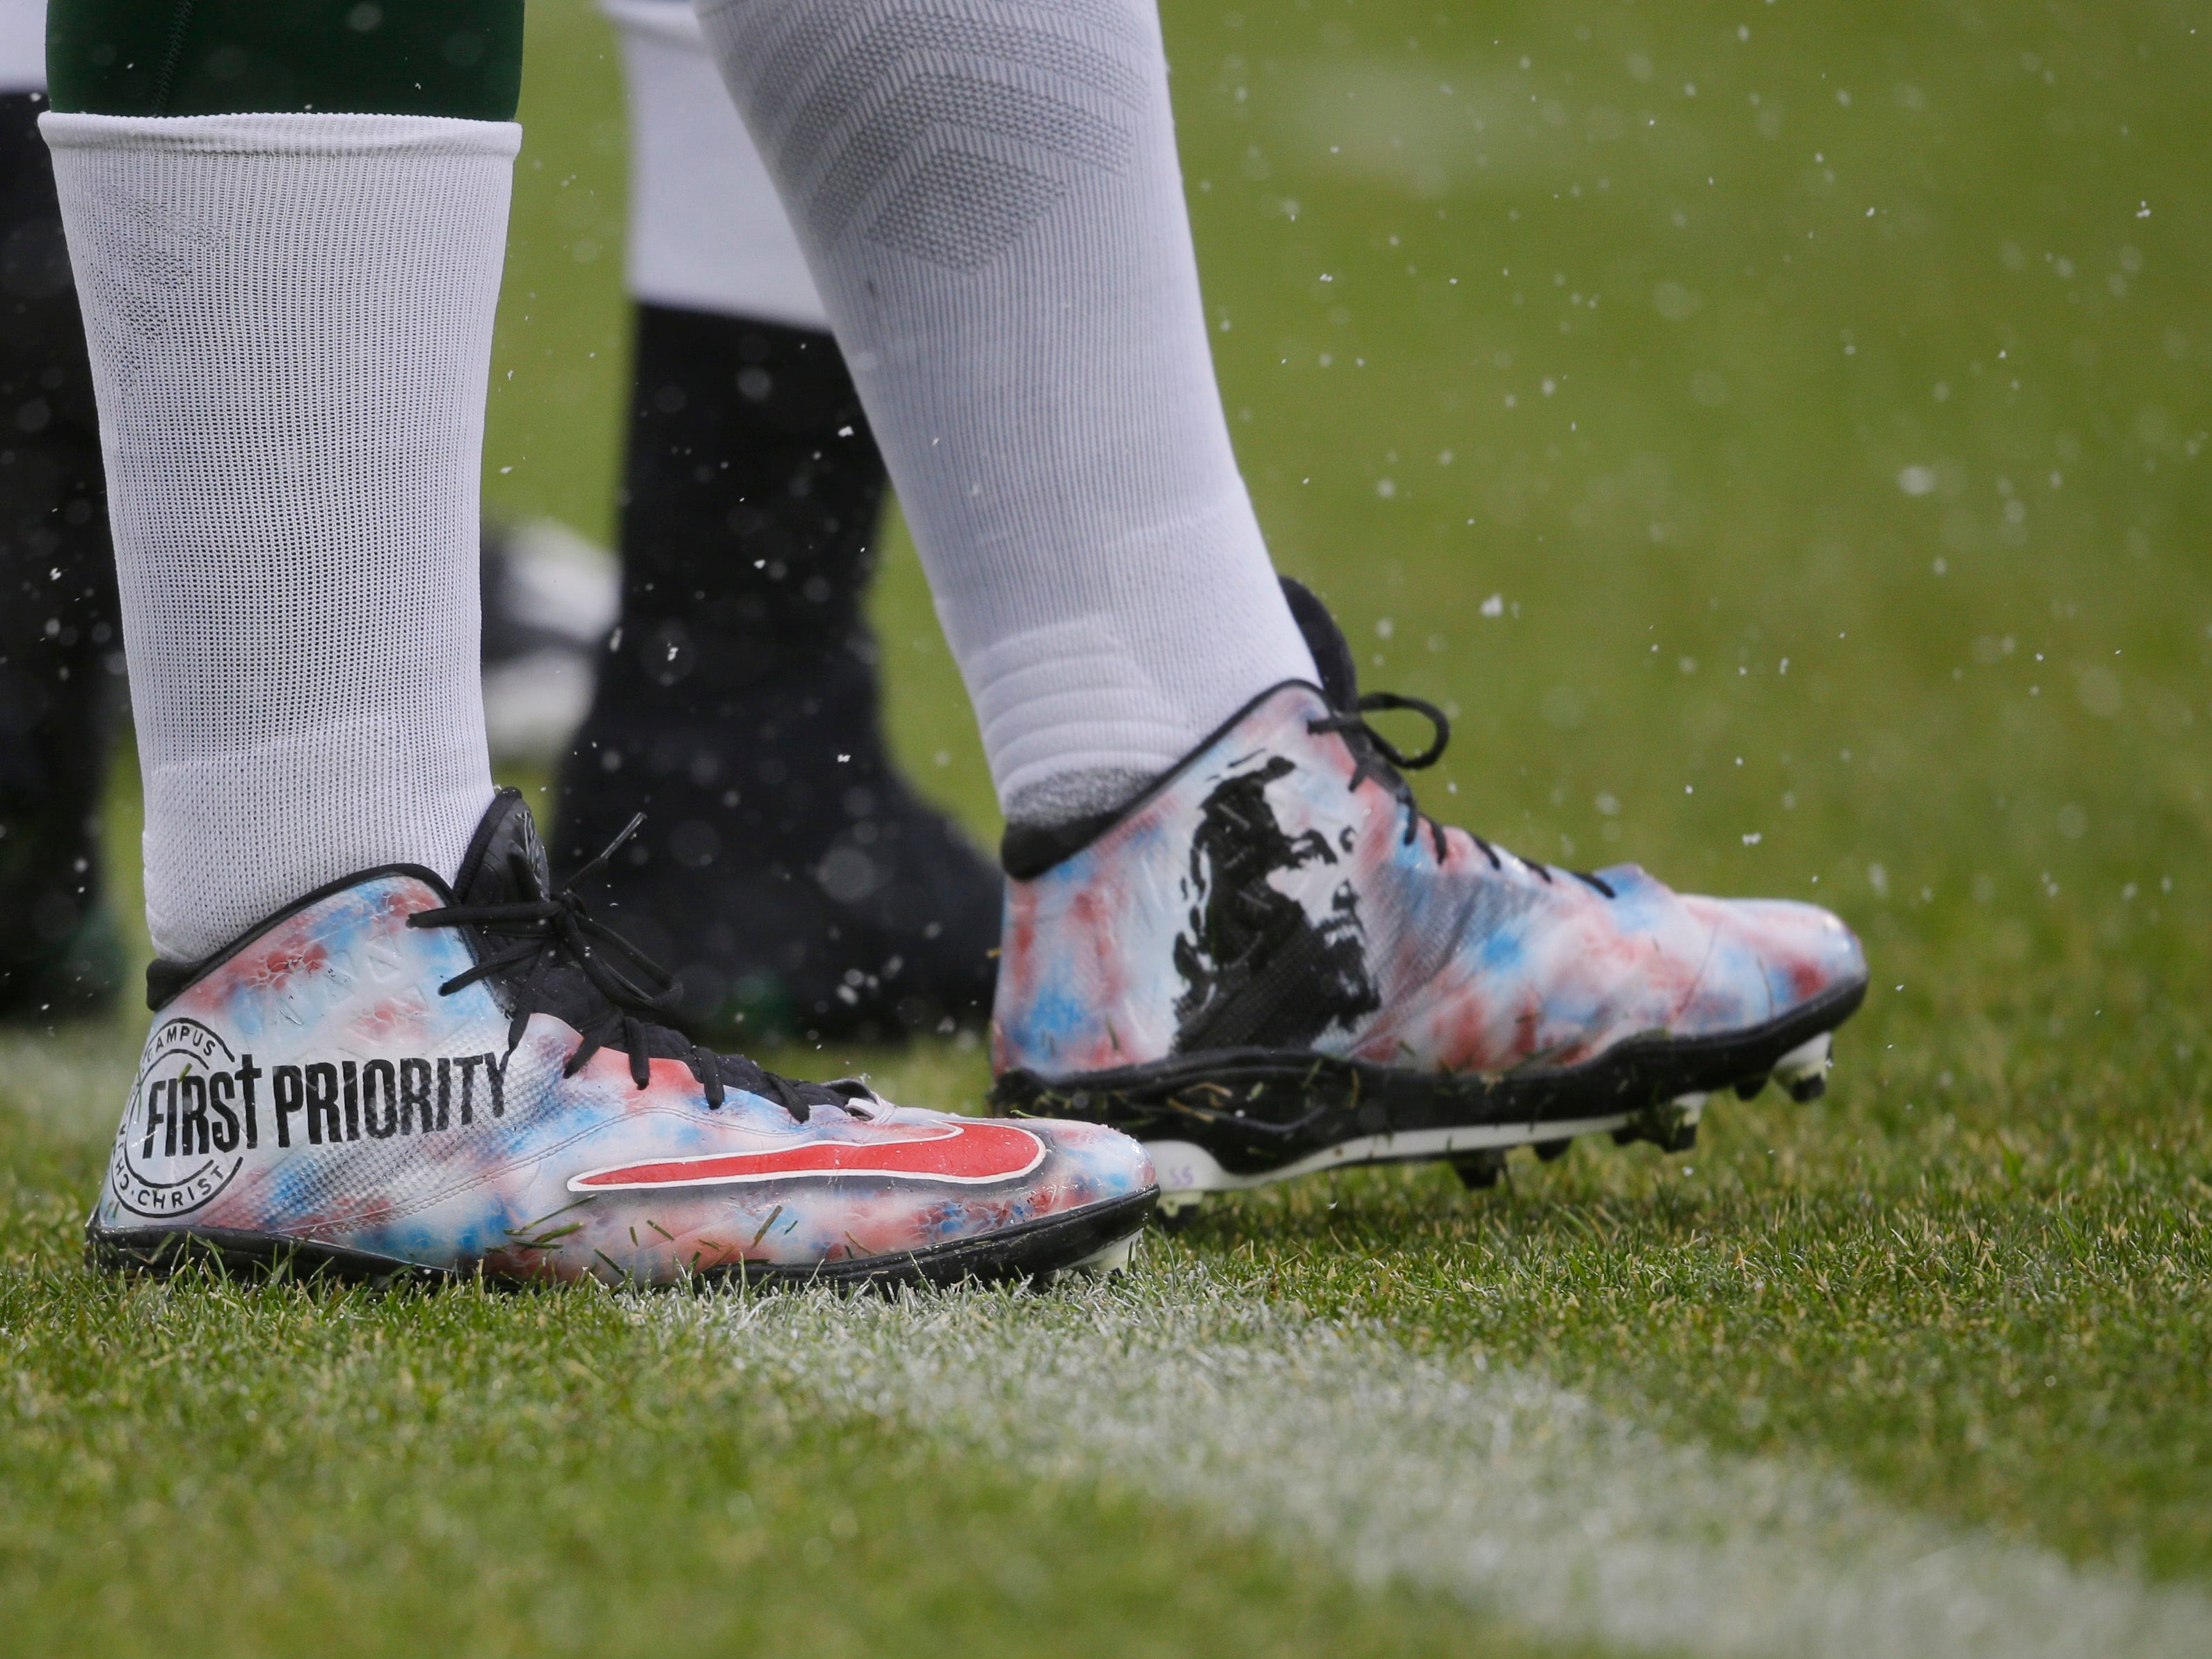 Green Bay Packers offensive guard Lucas Patrick wears custom cleats in warm ups before an NFL football game between the Green Bay Packers and the Arizona Cardinals Sunday, Dec. 2, 2018, in Green Bay, Wis. (AP Photo/Jeffrey Phelps)